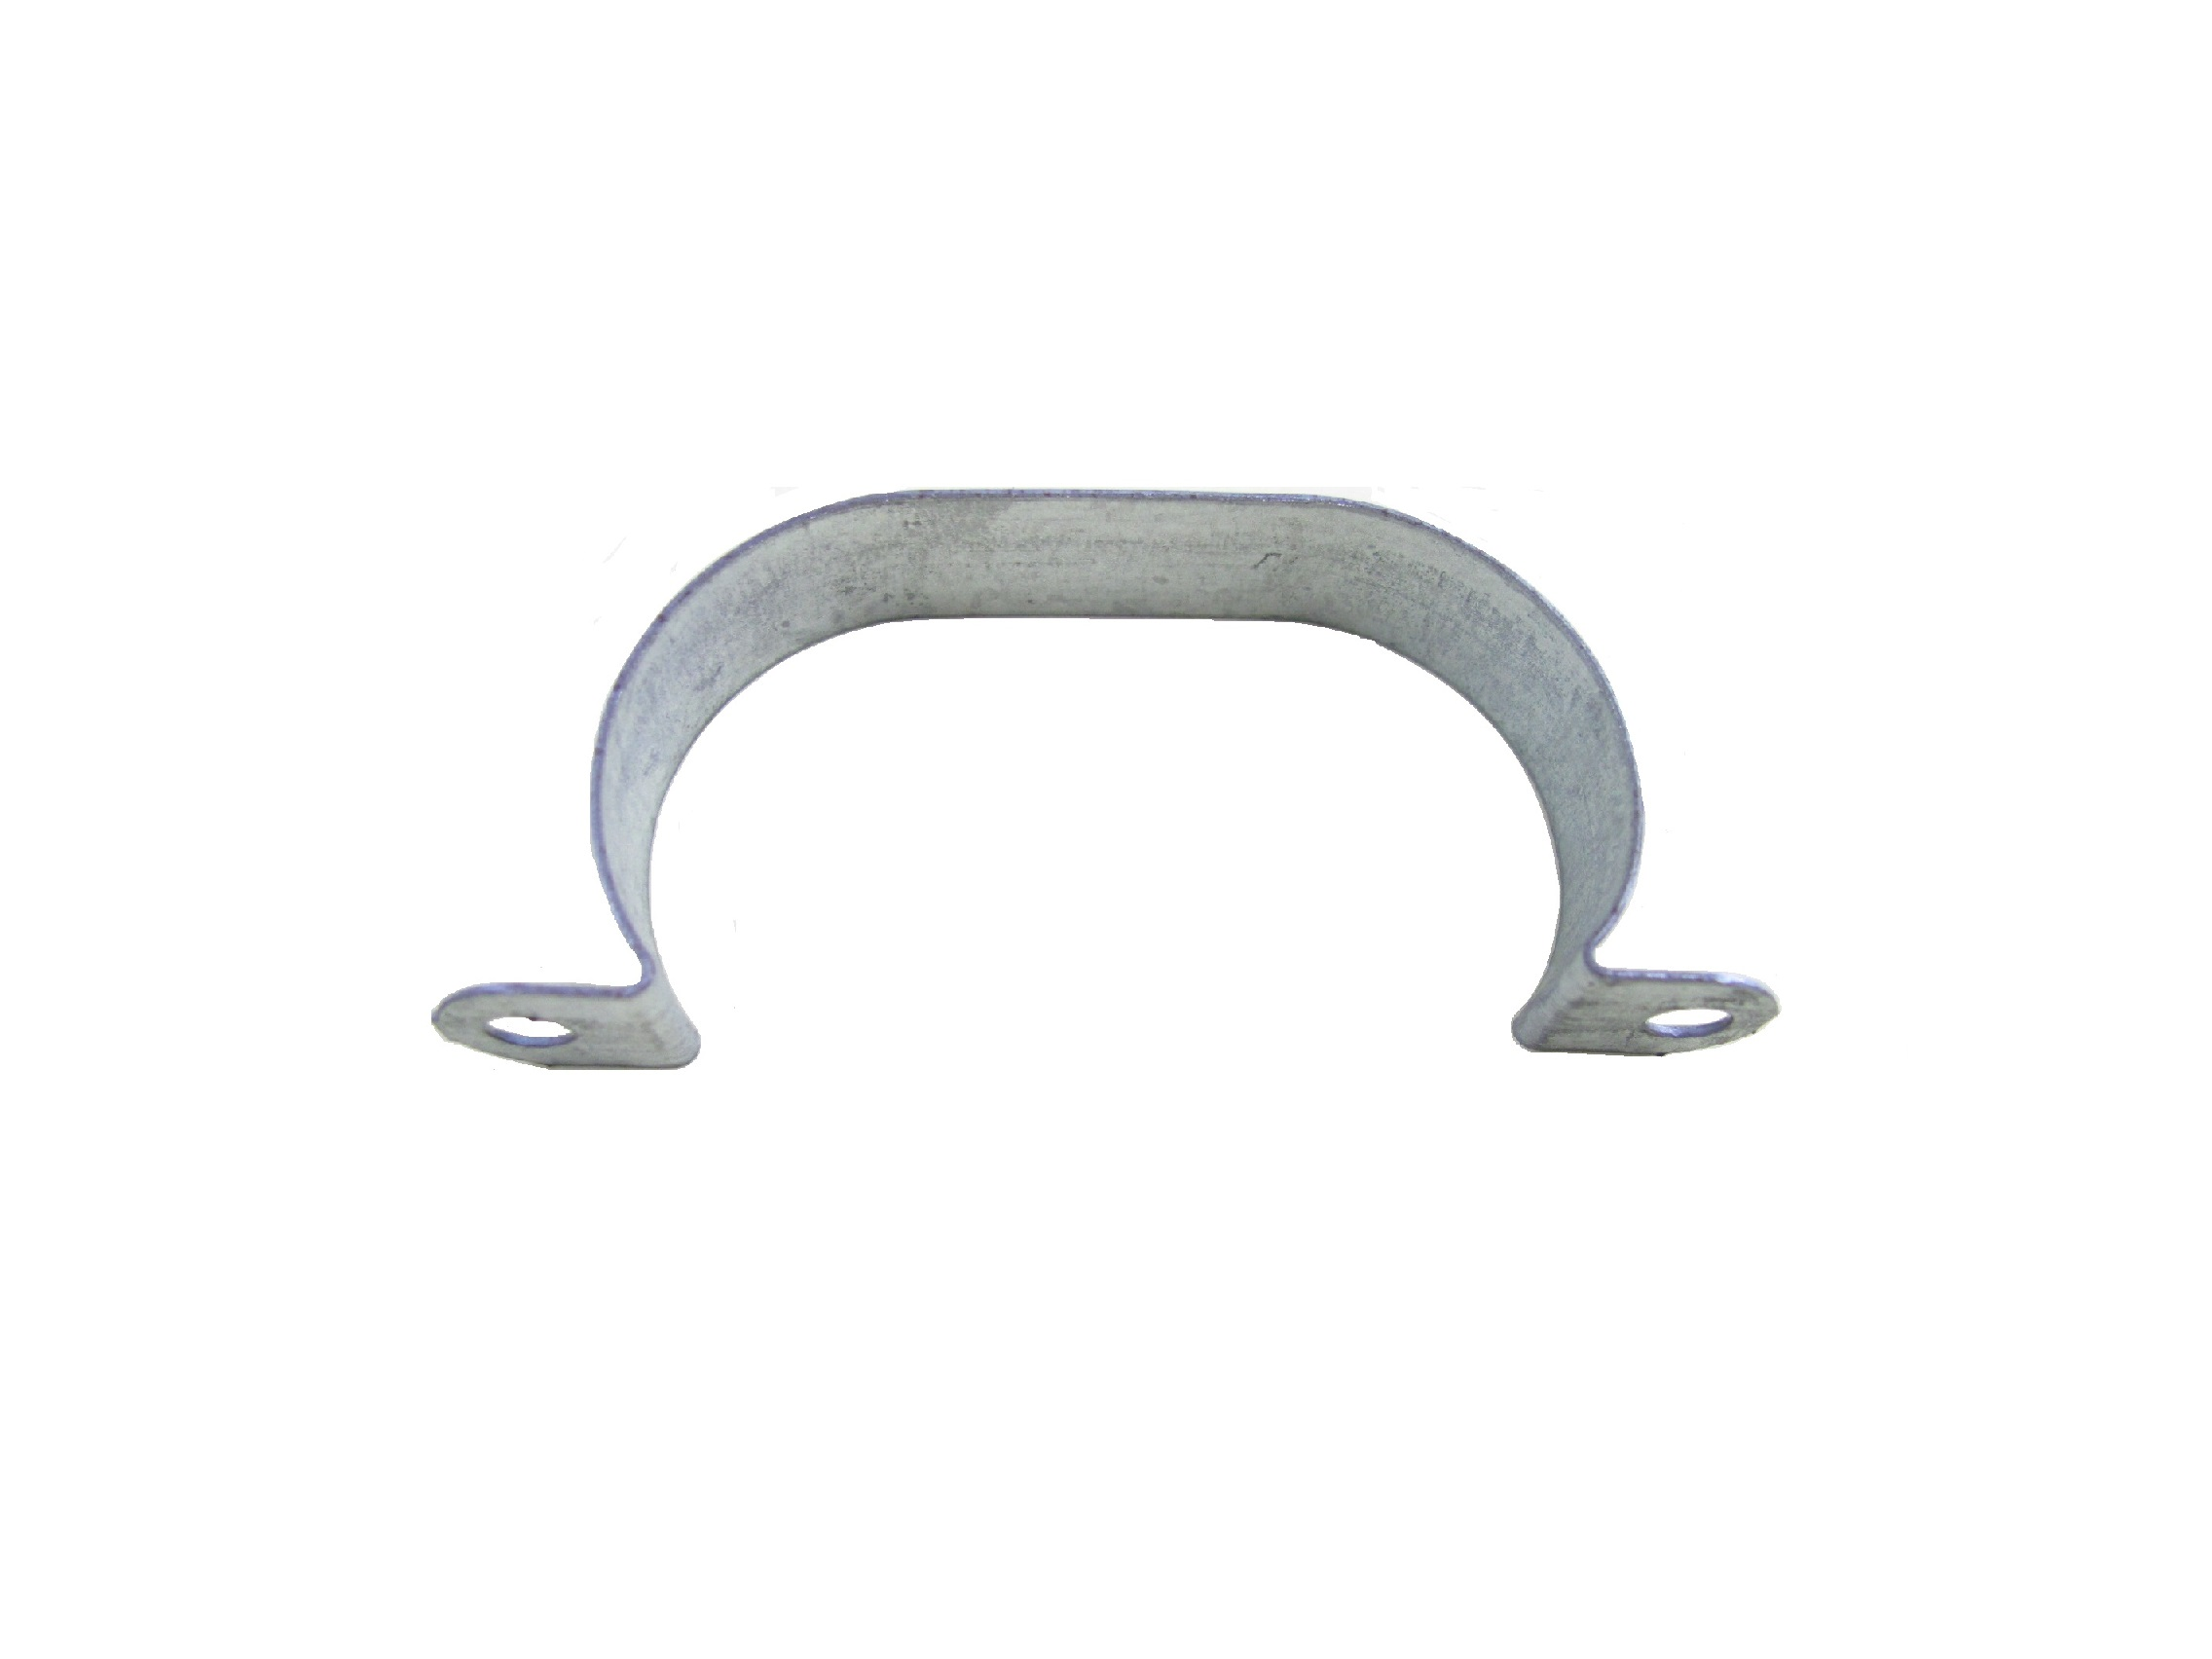 Oval Wrap-Around Strap Brackets